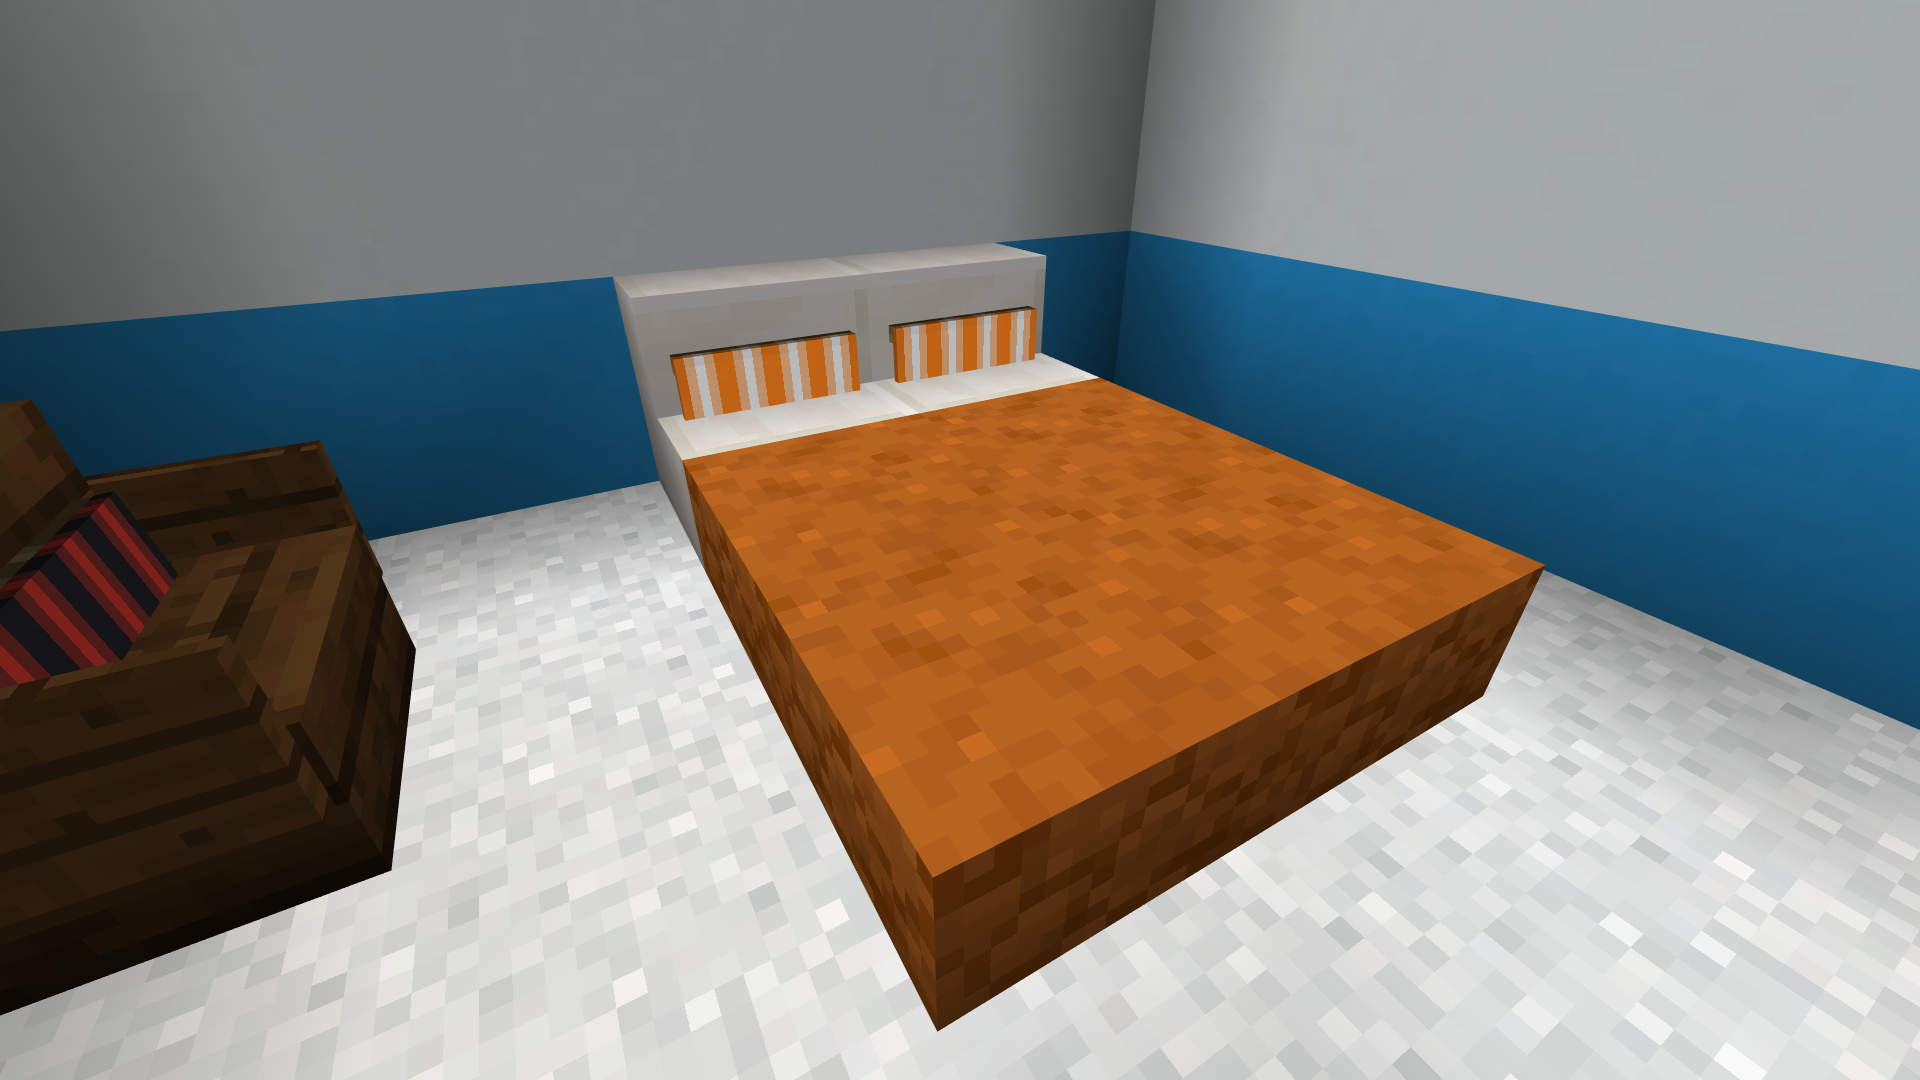 Minecraft Bedroom Furniture Ideas Minecraft Furniture,Bedding Ideas For Master Bedroom